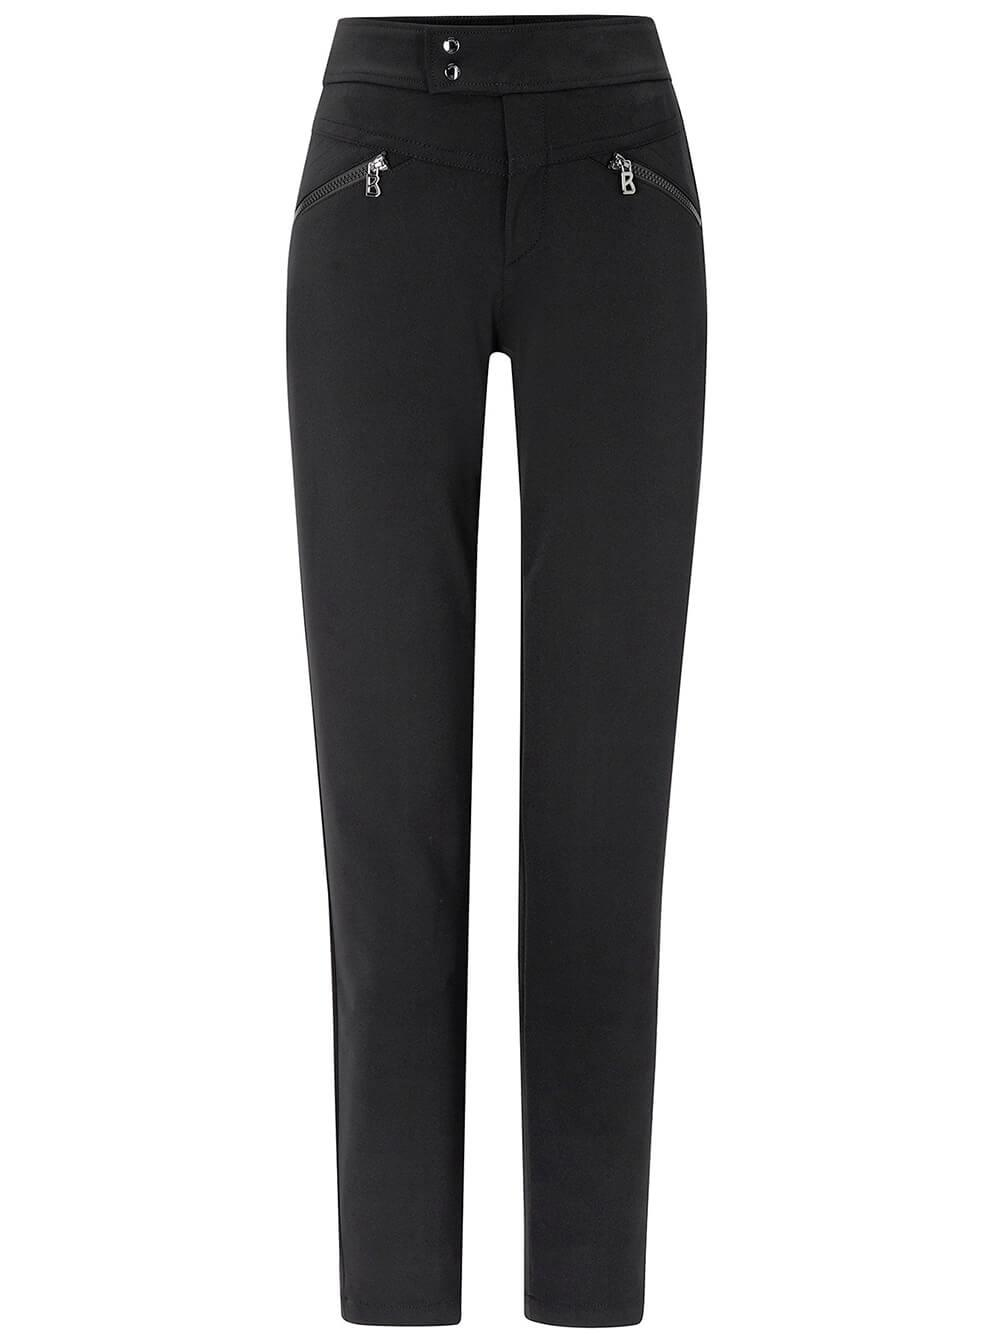 Lindy Techno Stretch Pant Item # 16373844-C